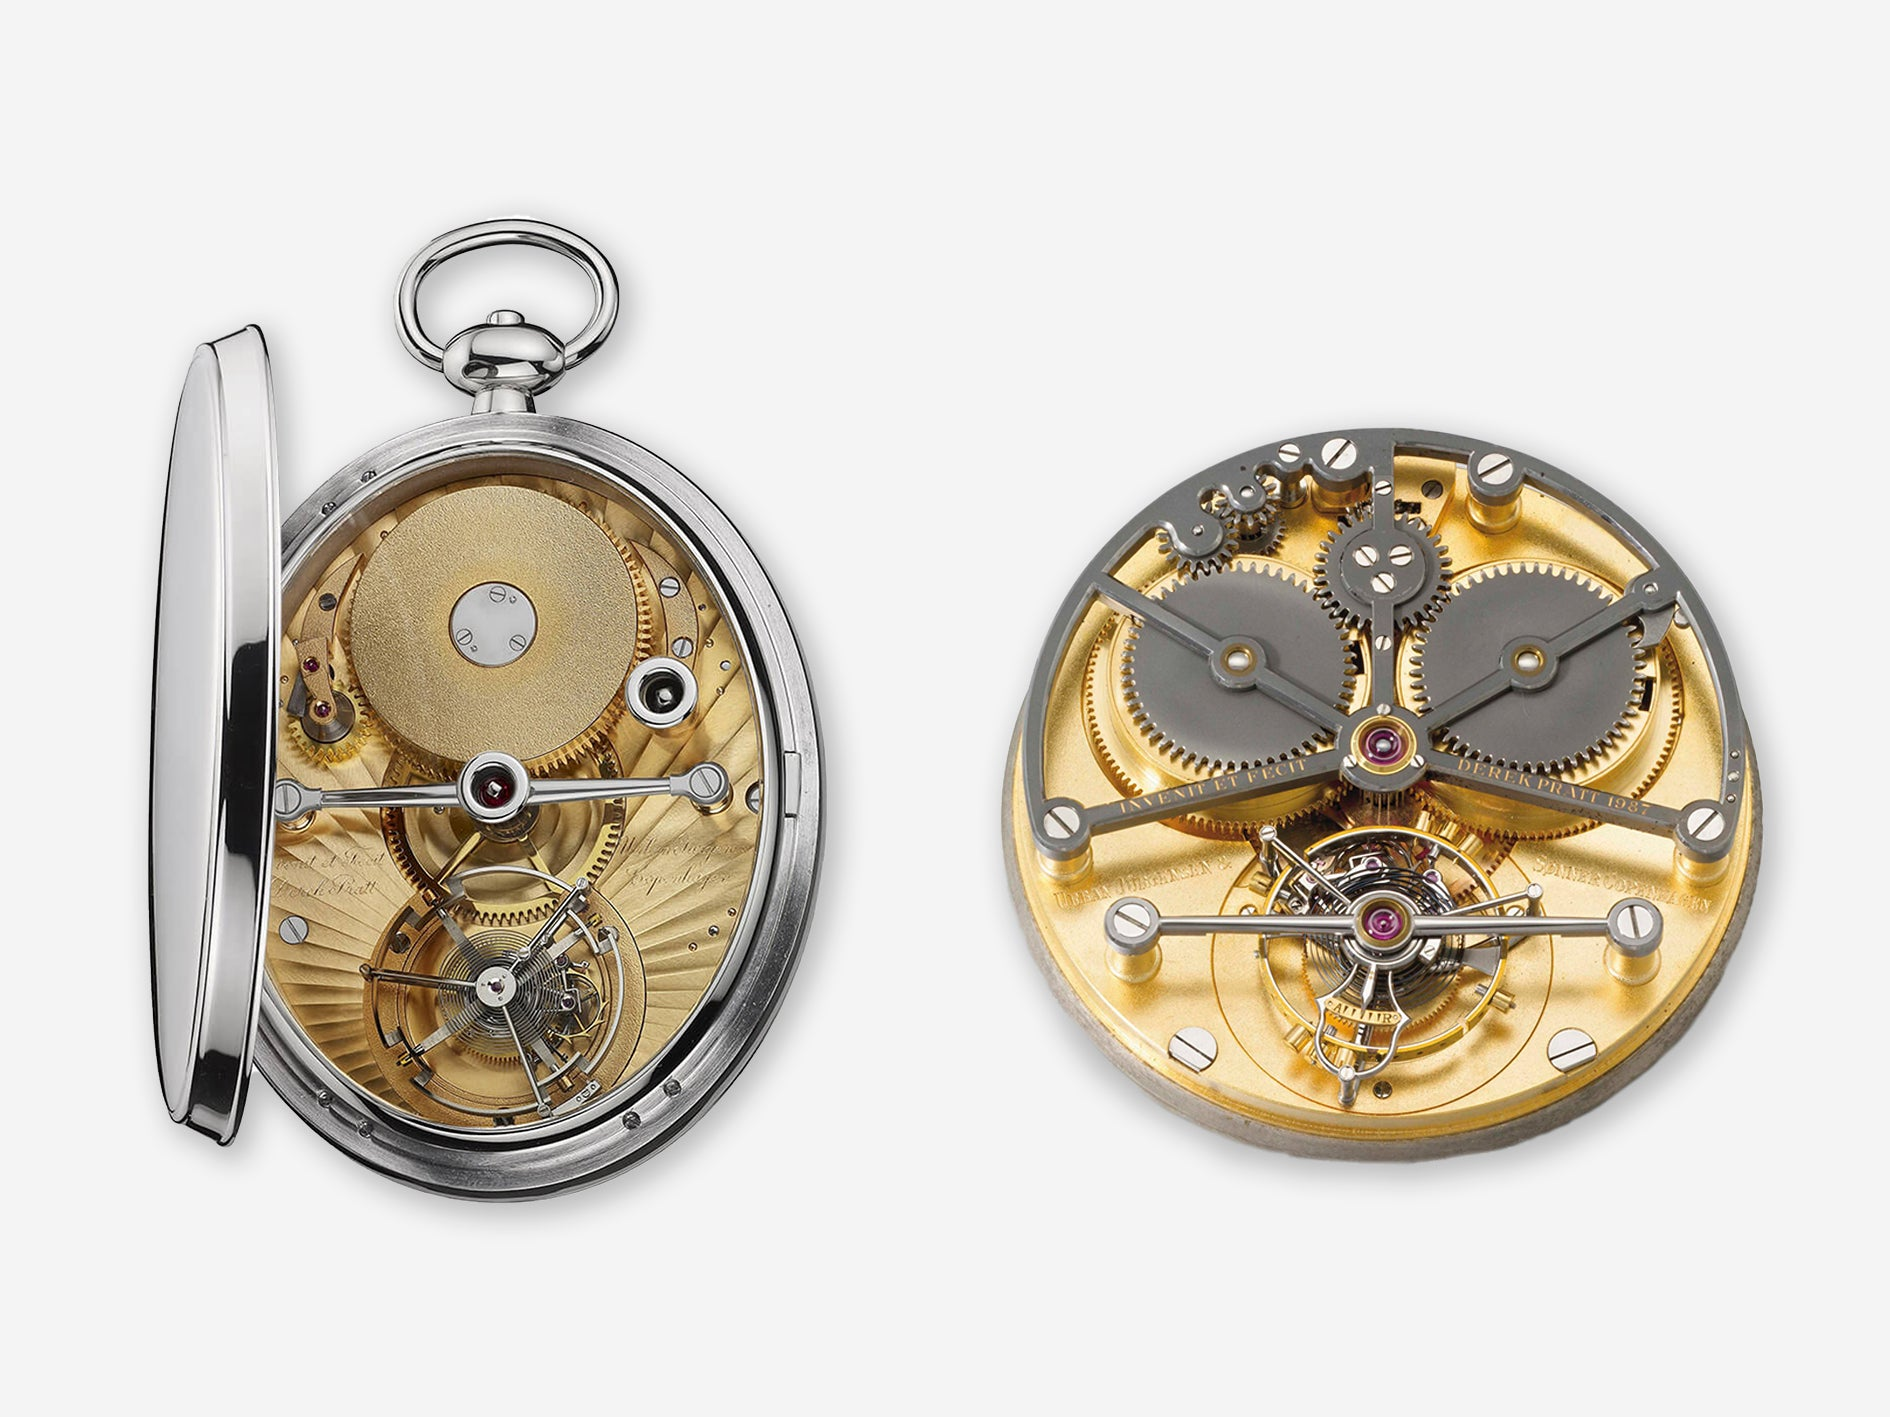 Two tourbillon movements made by Derek Pratt, one normal and one flying